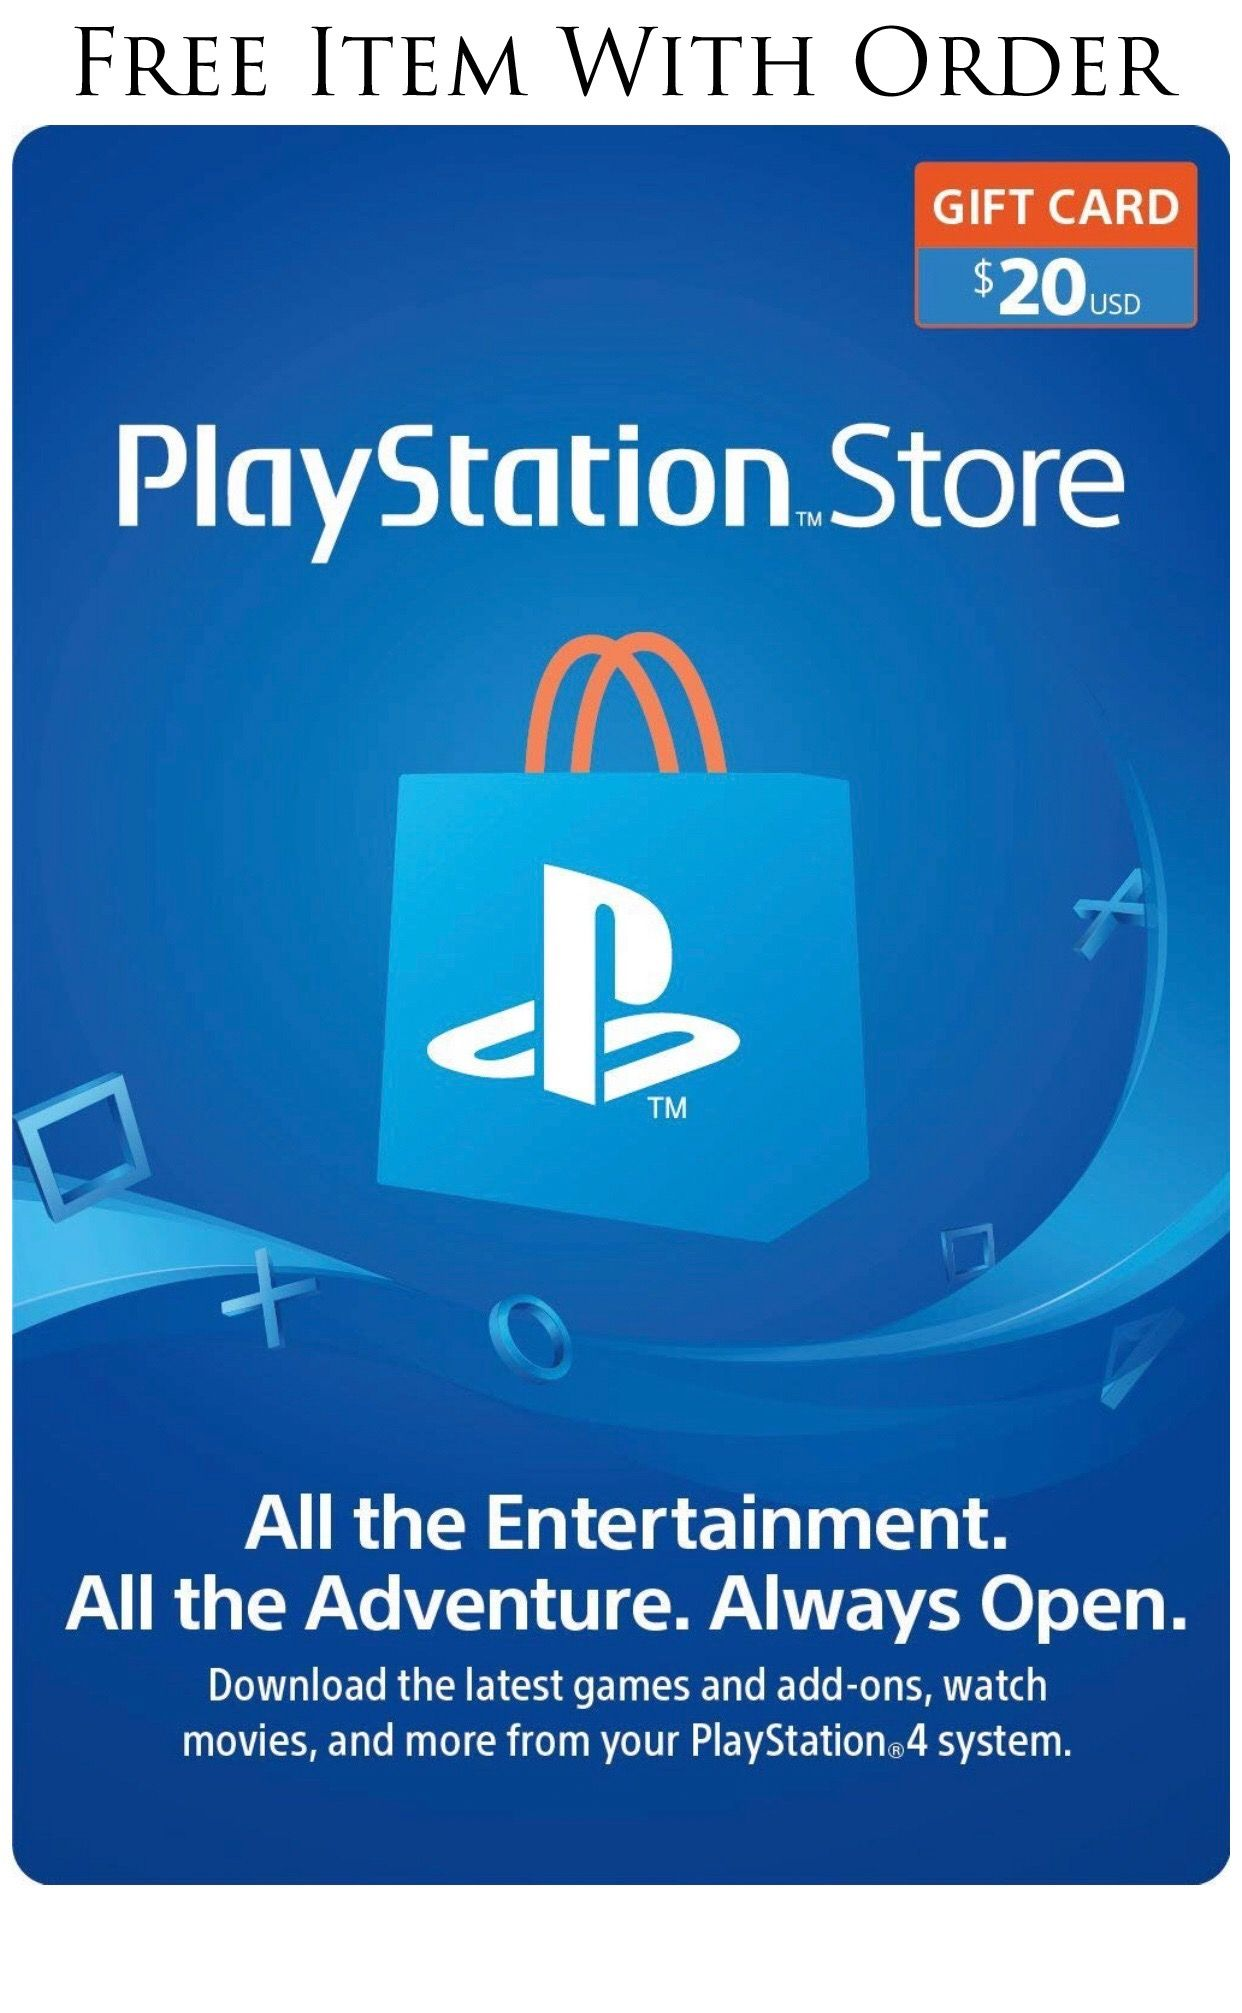 Enjoy playstation content with convenient playstation